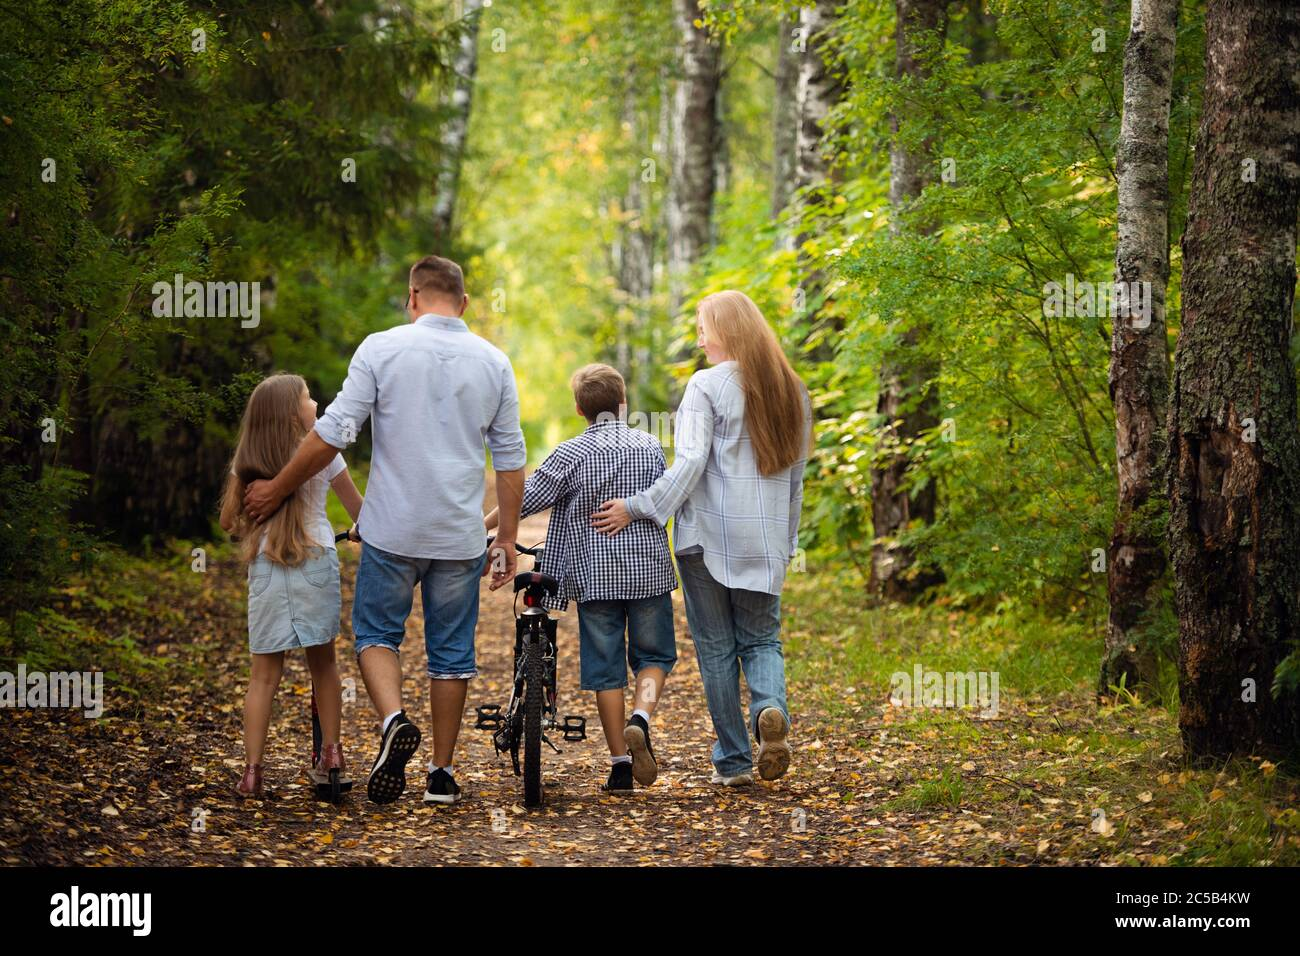 Happy family outdoors smiling in a summer forest Stock Photo